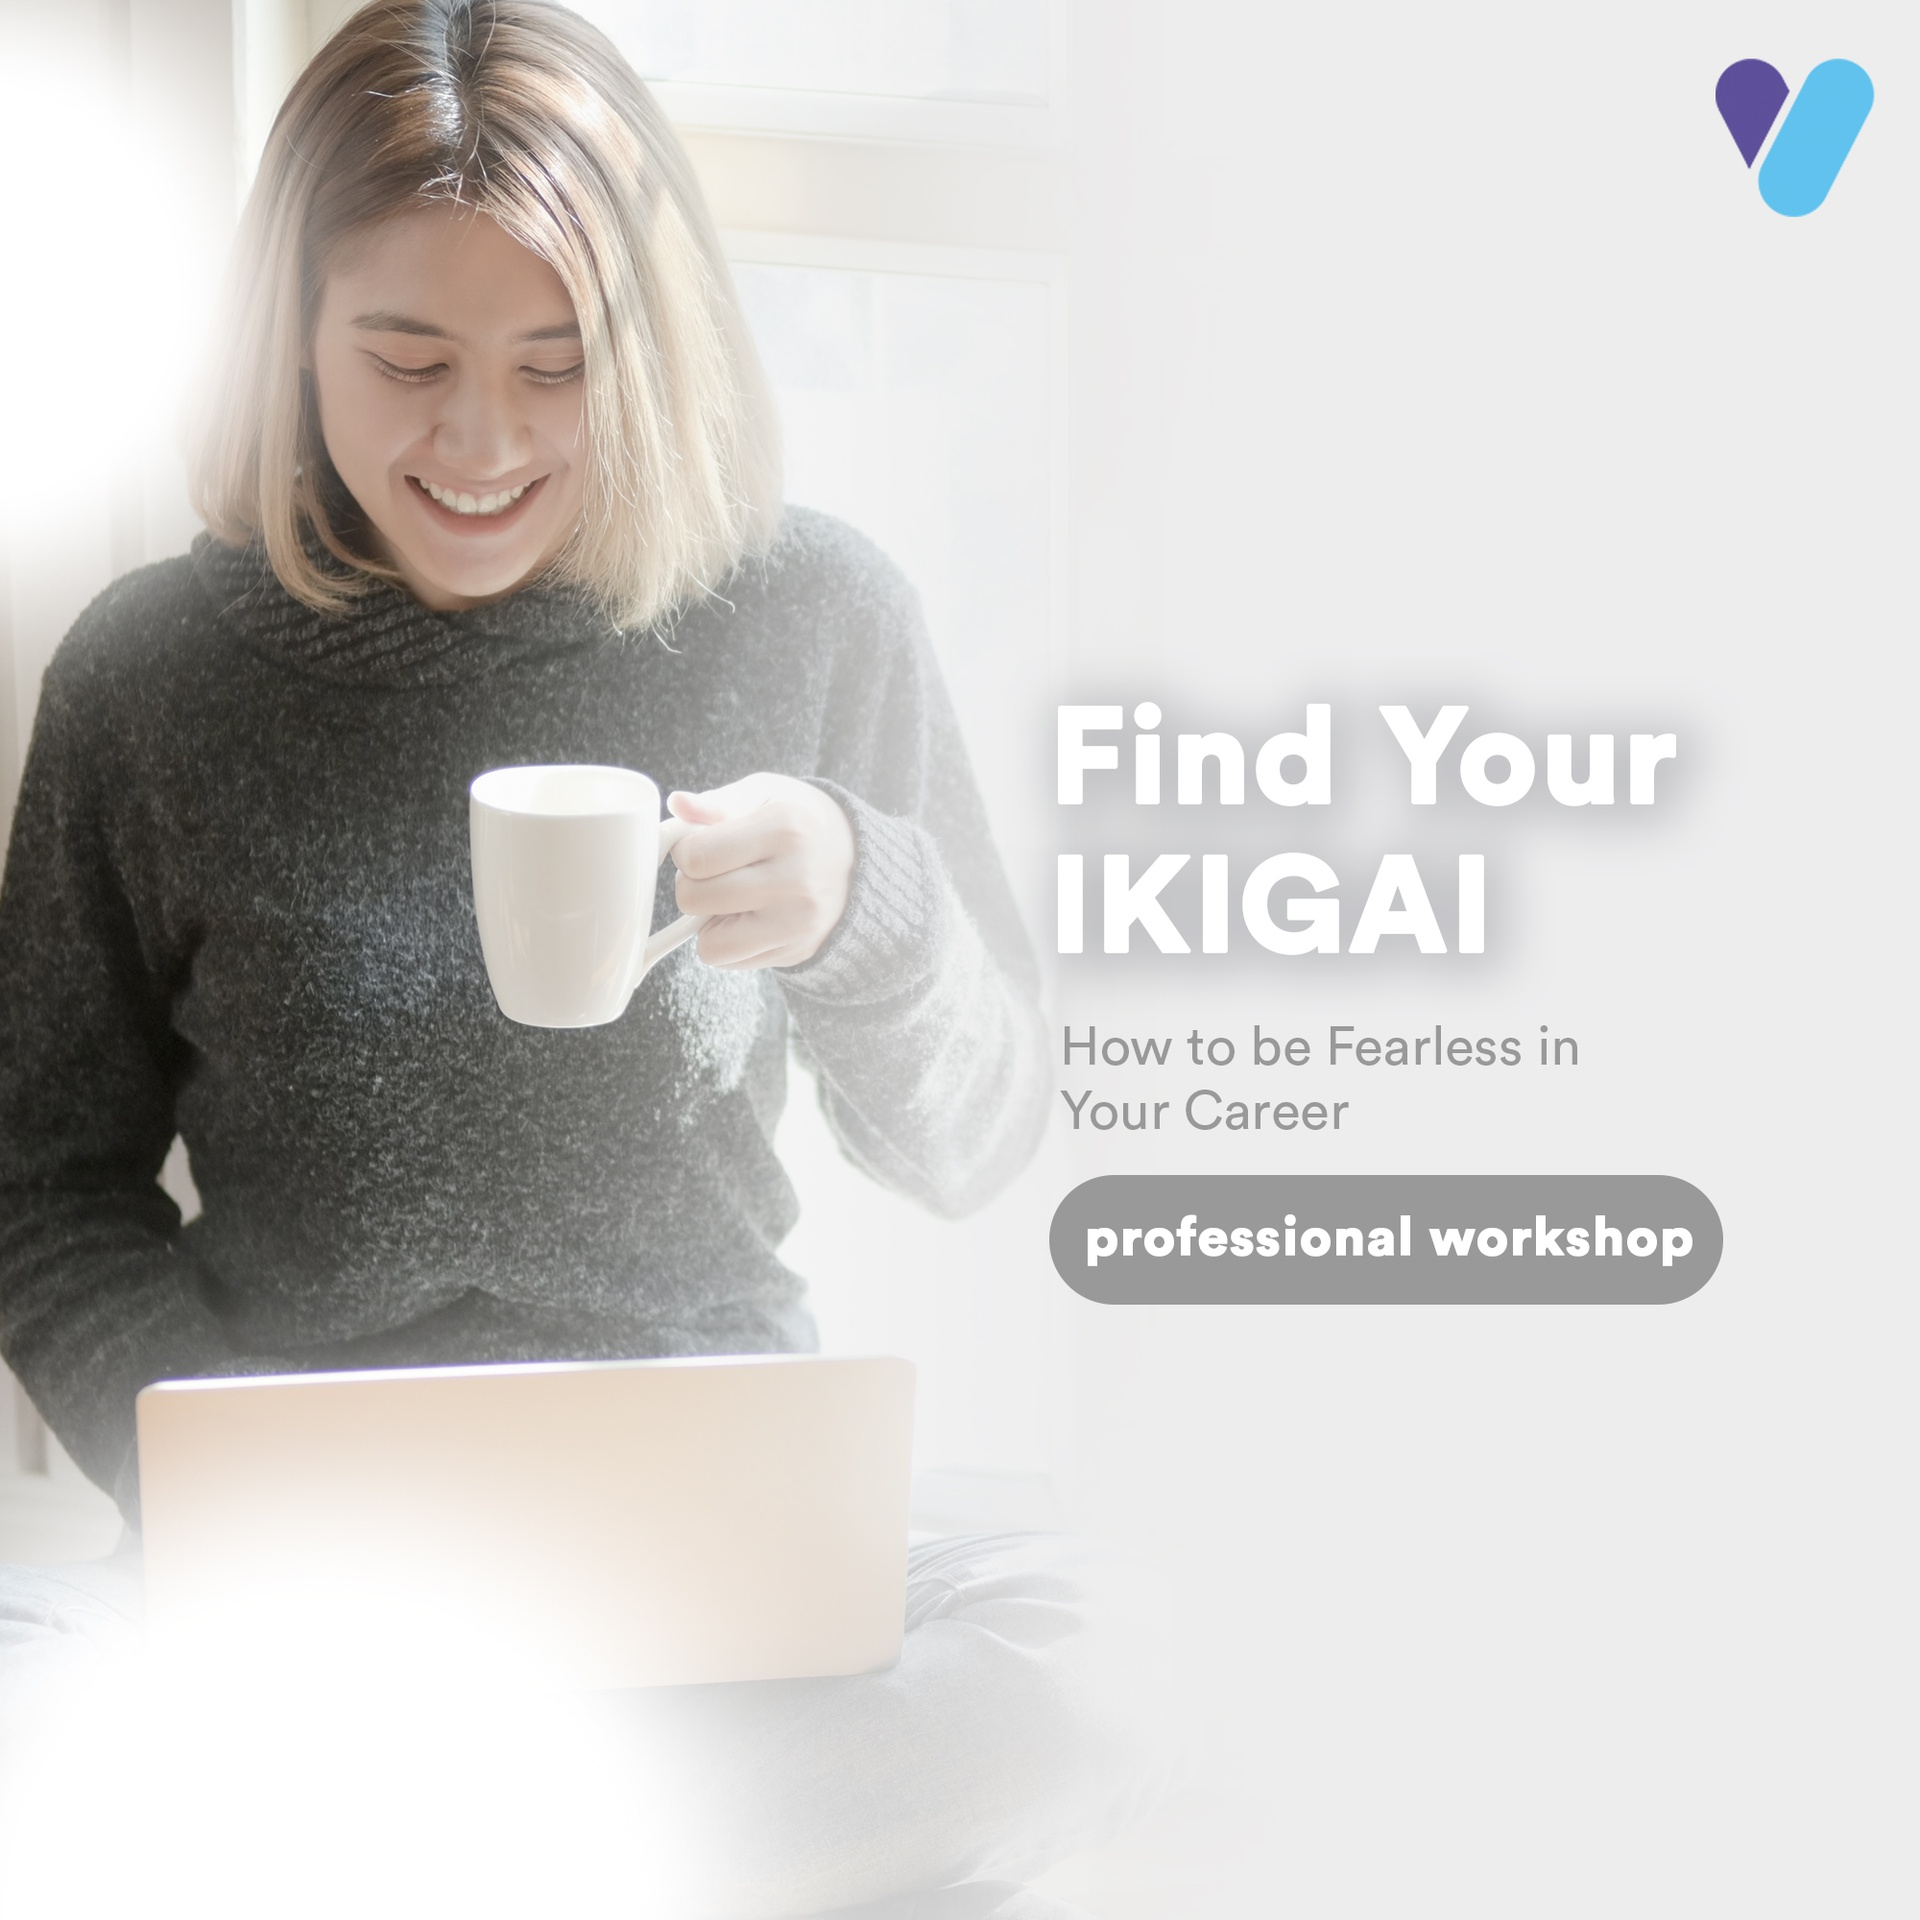 Find Your Ikigai: How to be Fearless in Your Career